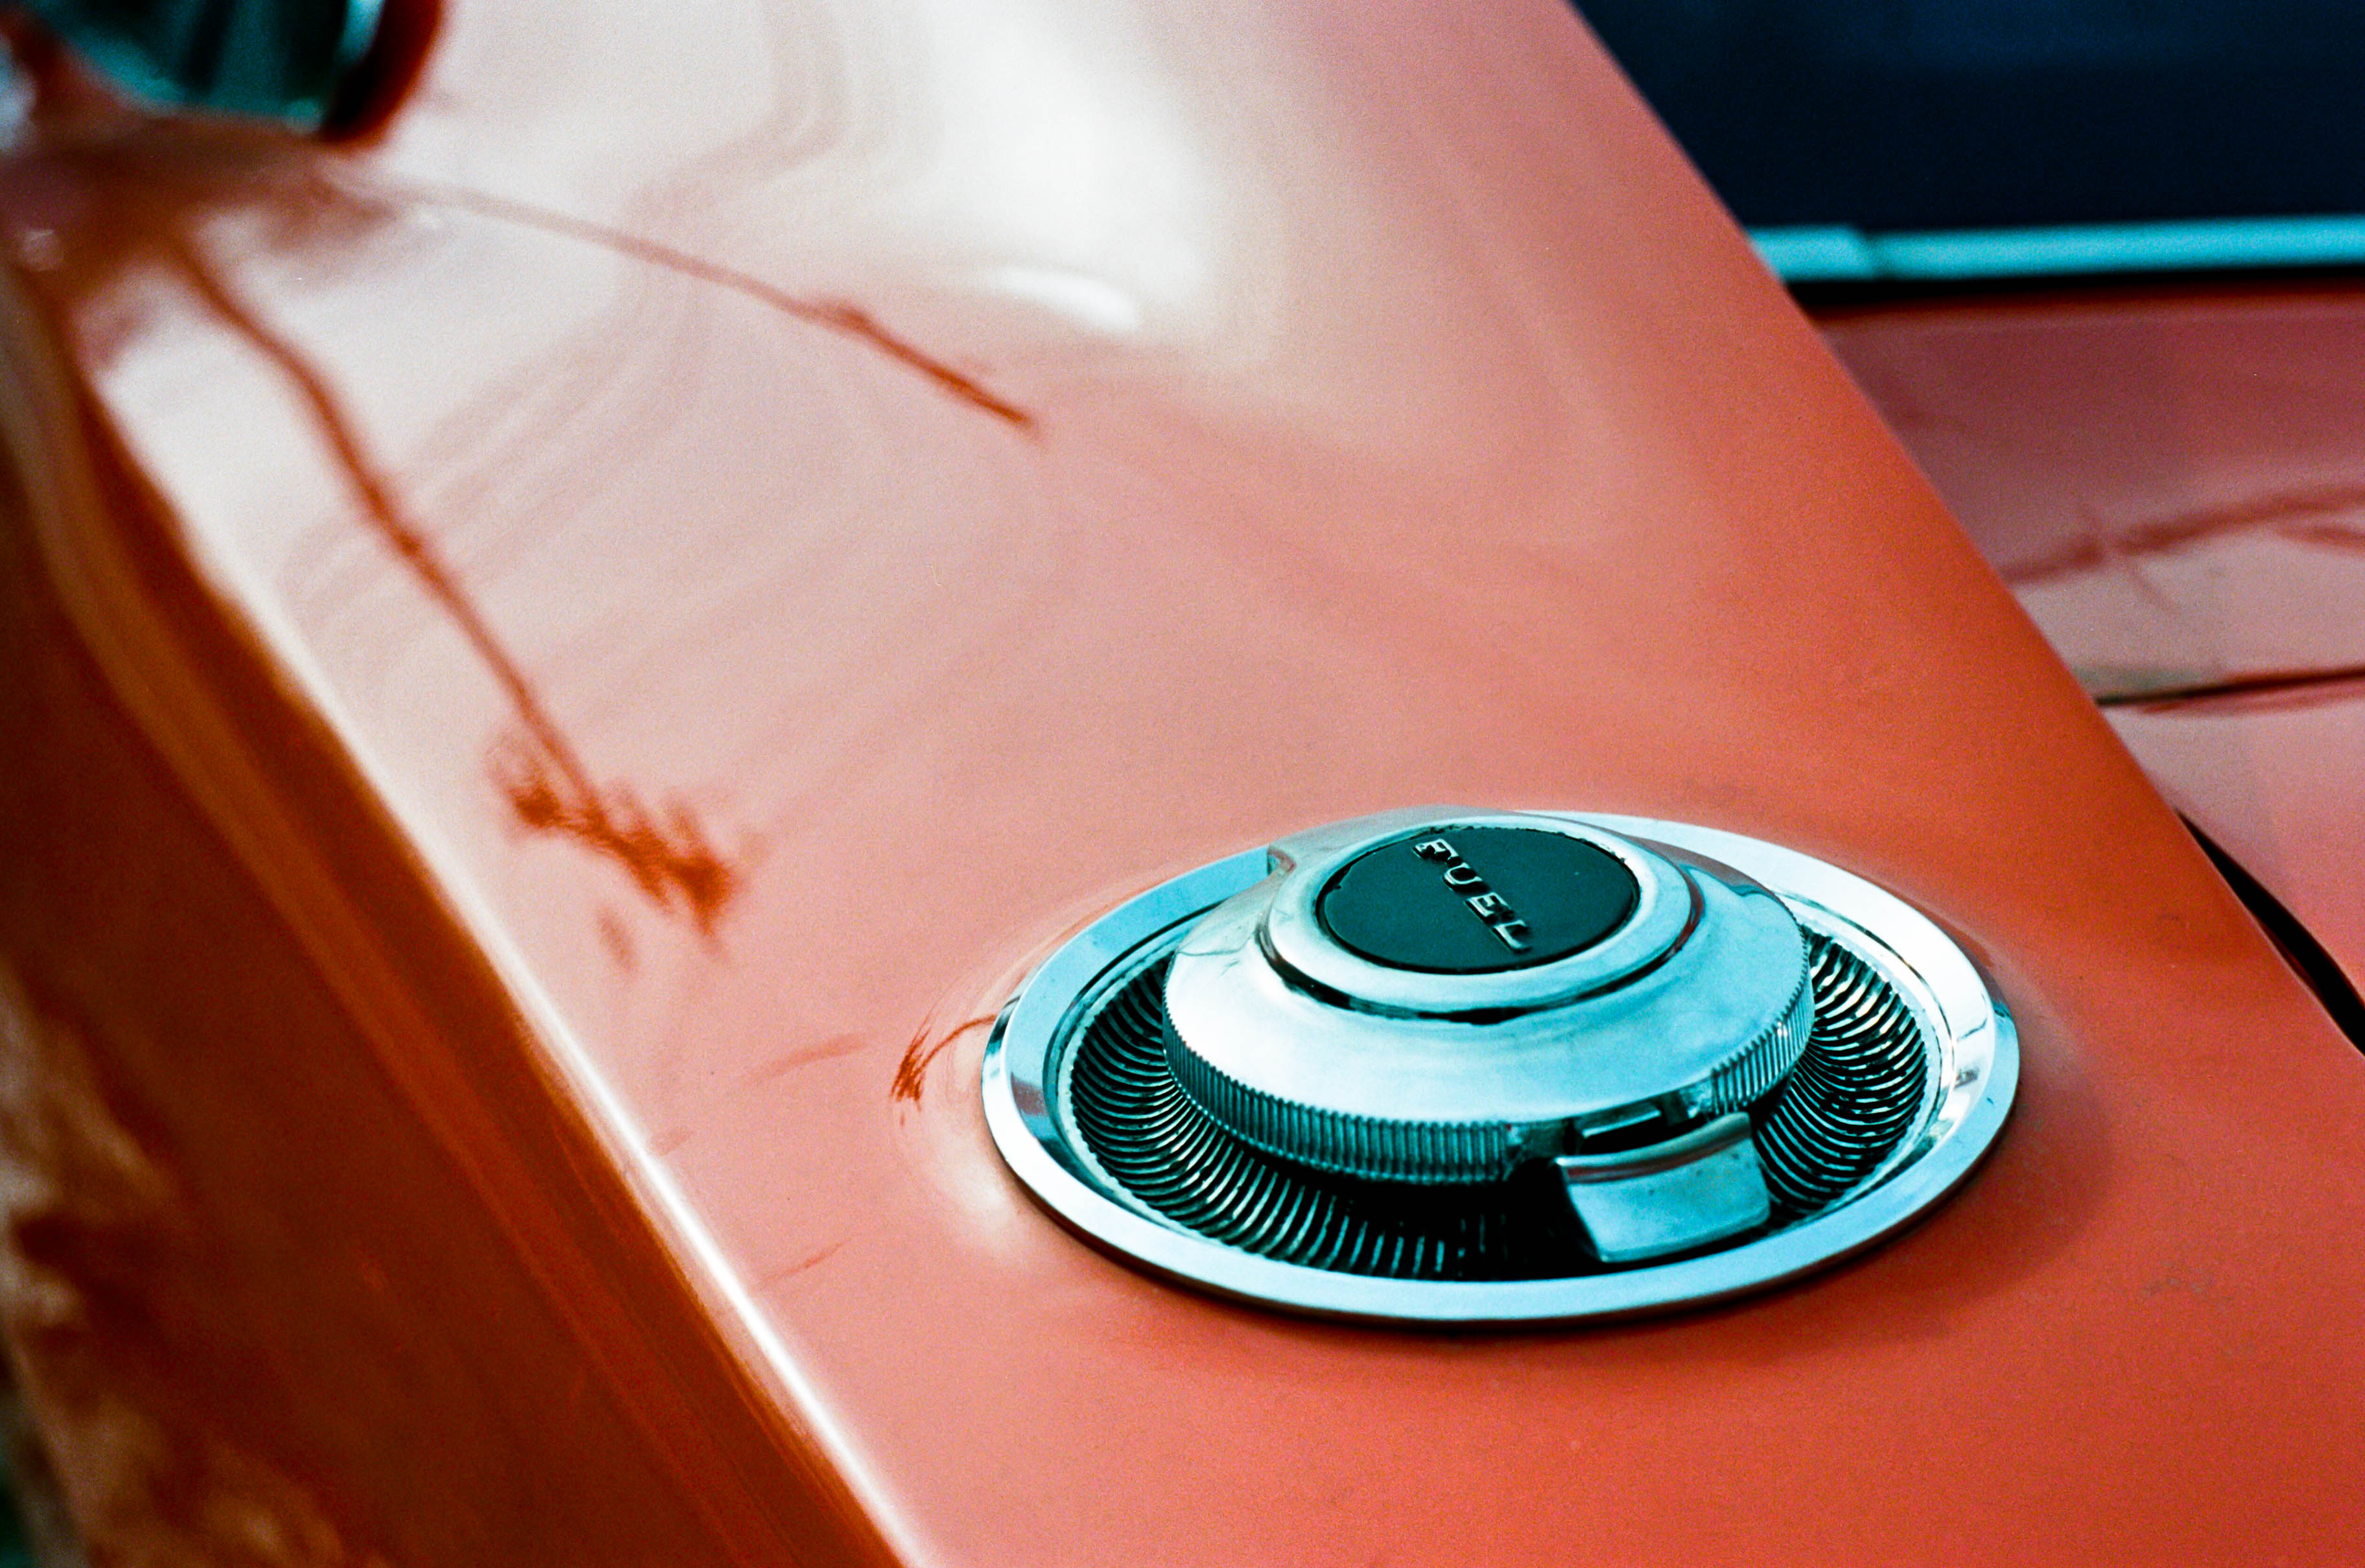 Fuel Cap of General Lee Replica at Leiper's Fork - Franklin, Tennessee